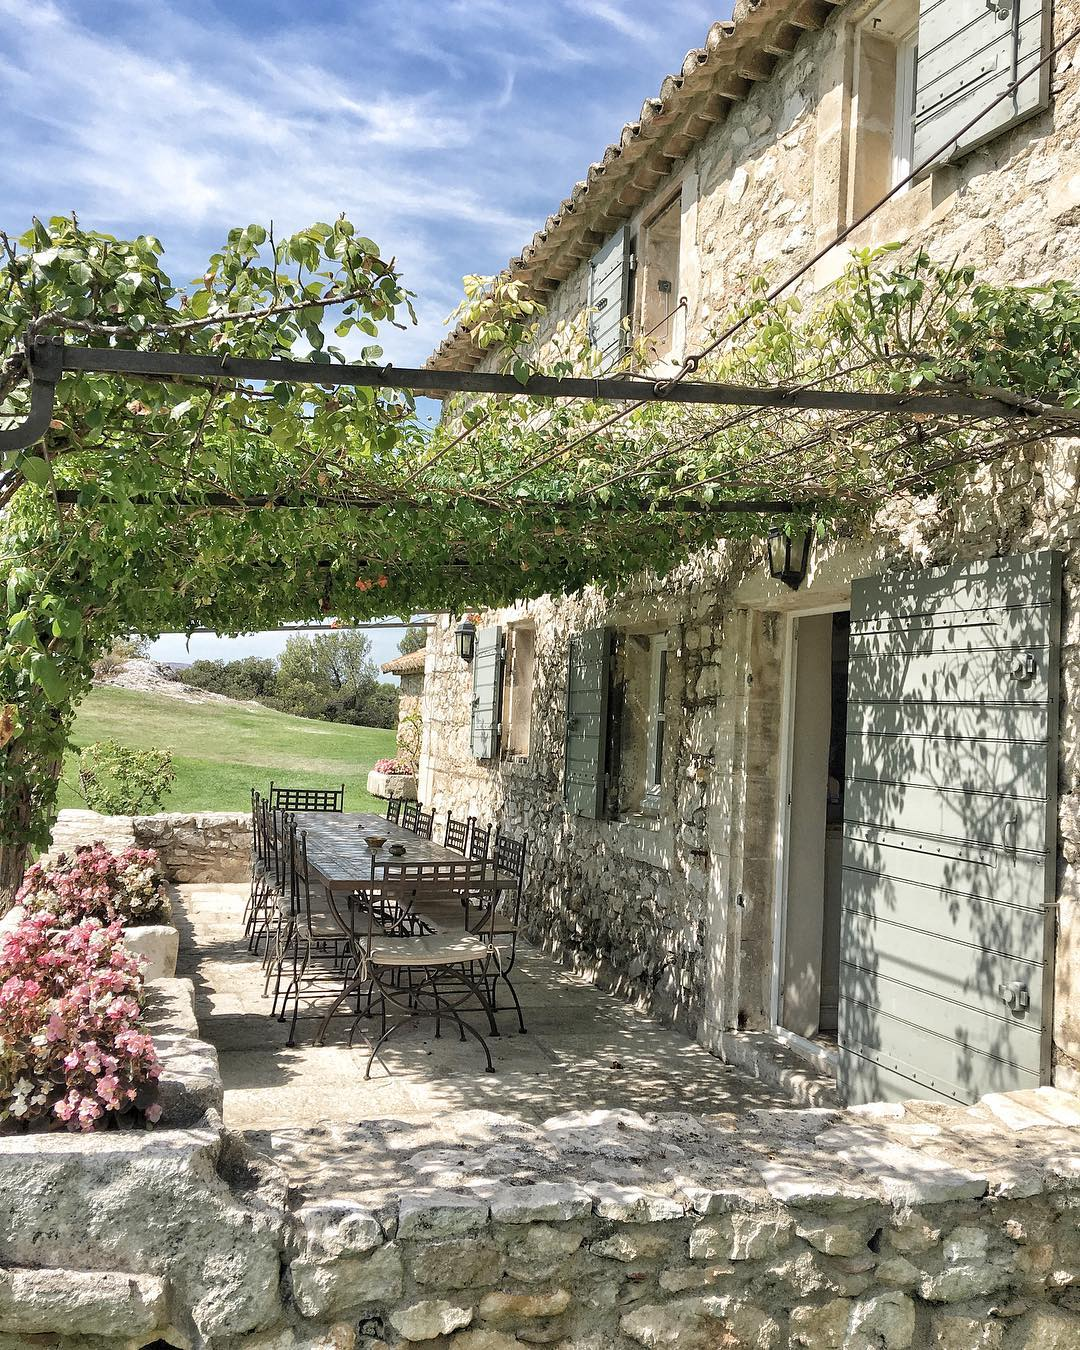 Charming stone exterior of a farmhouse in France - photo by Vivi et Margot.